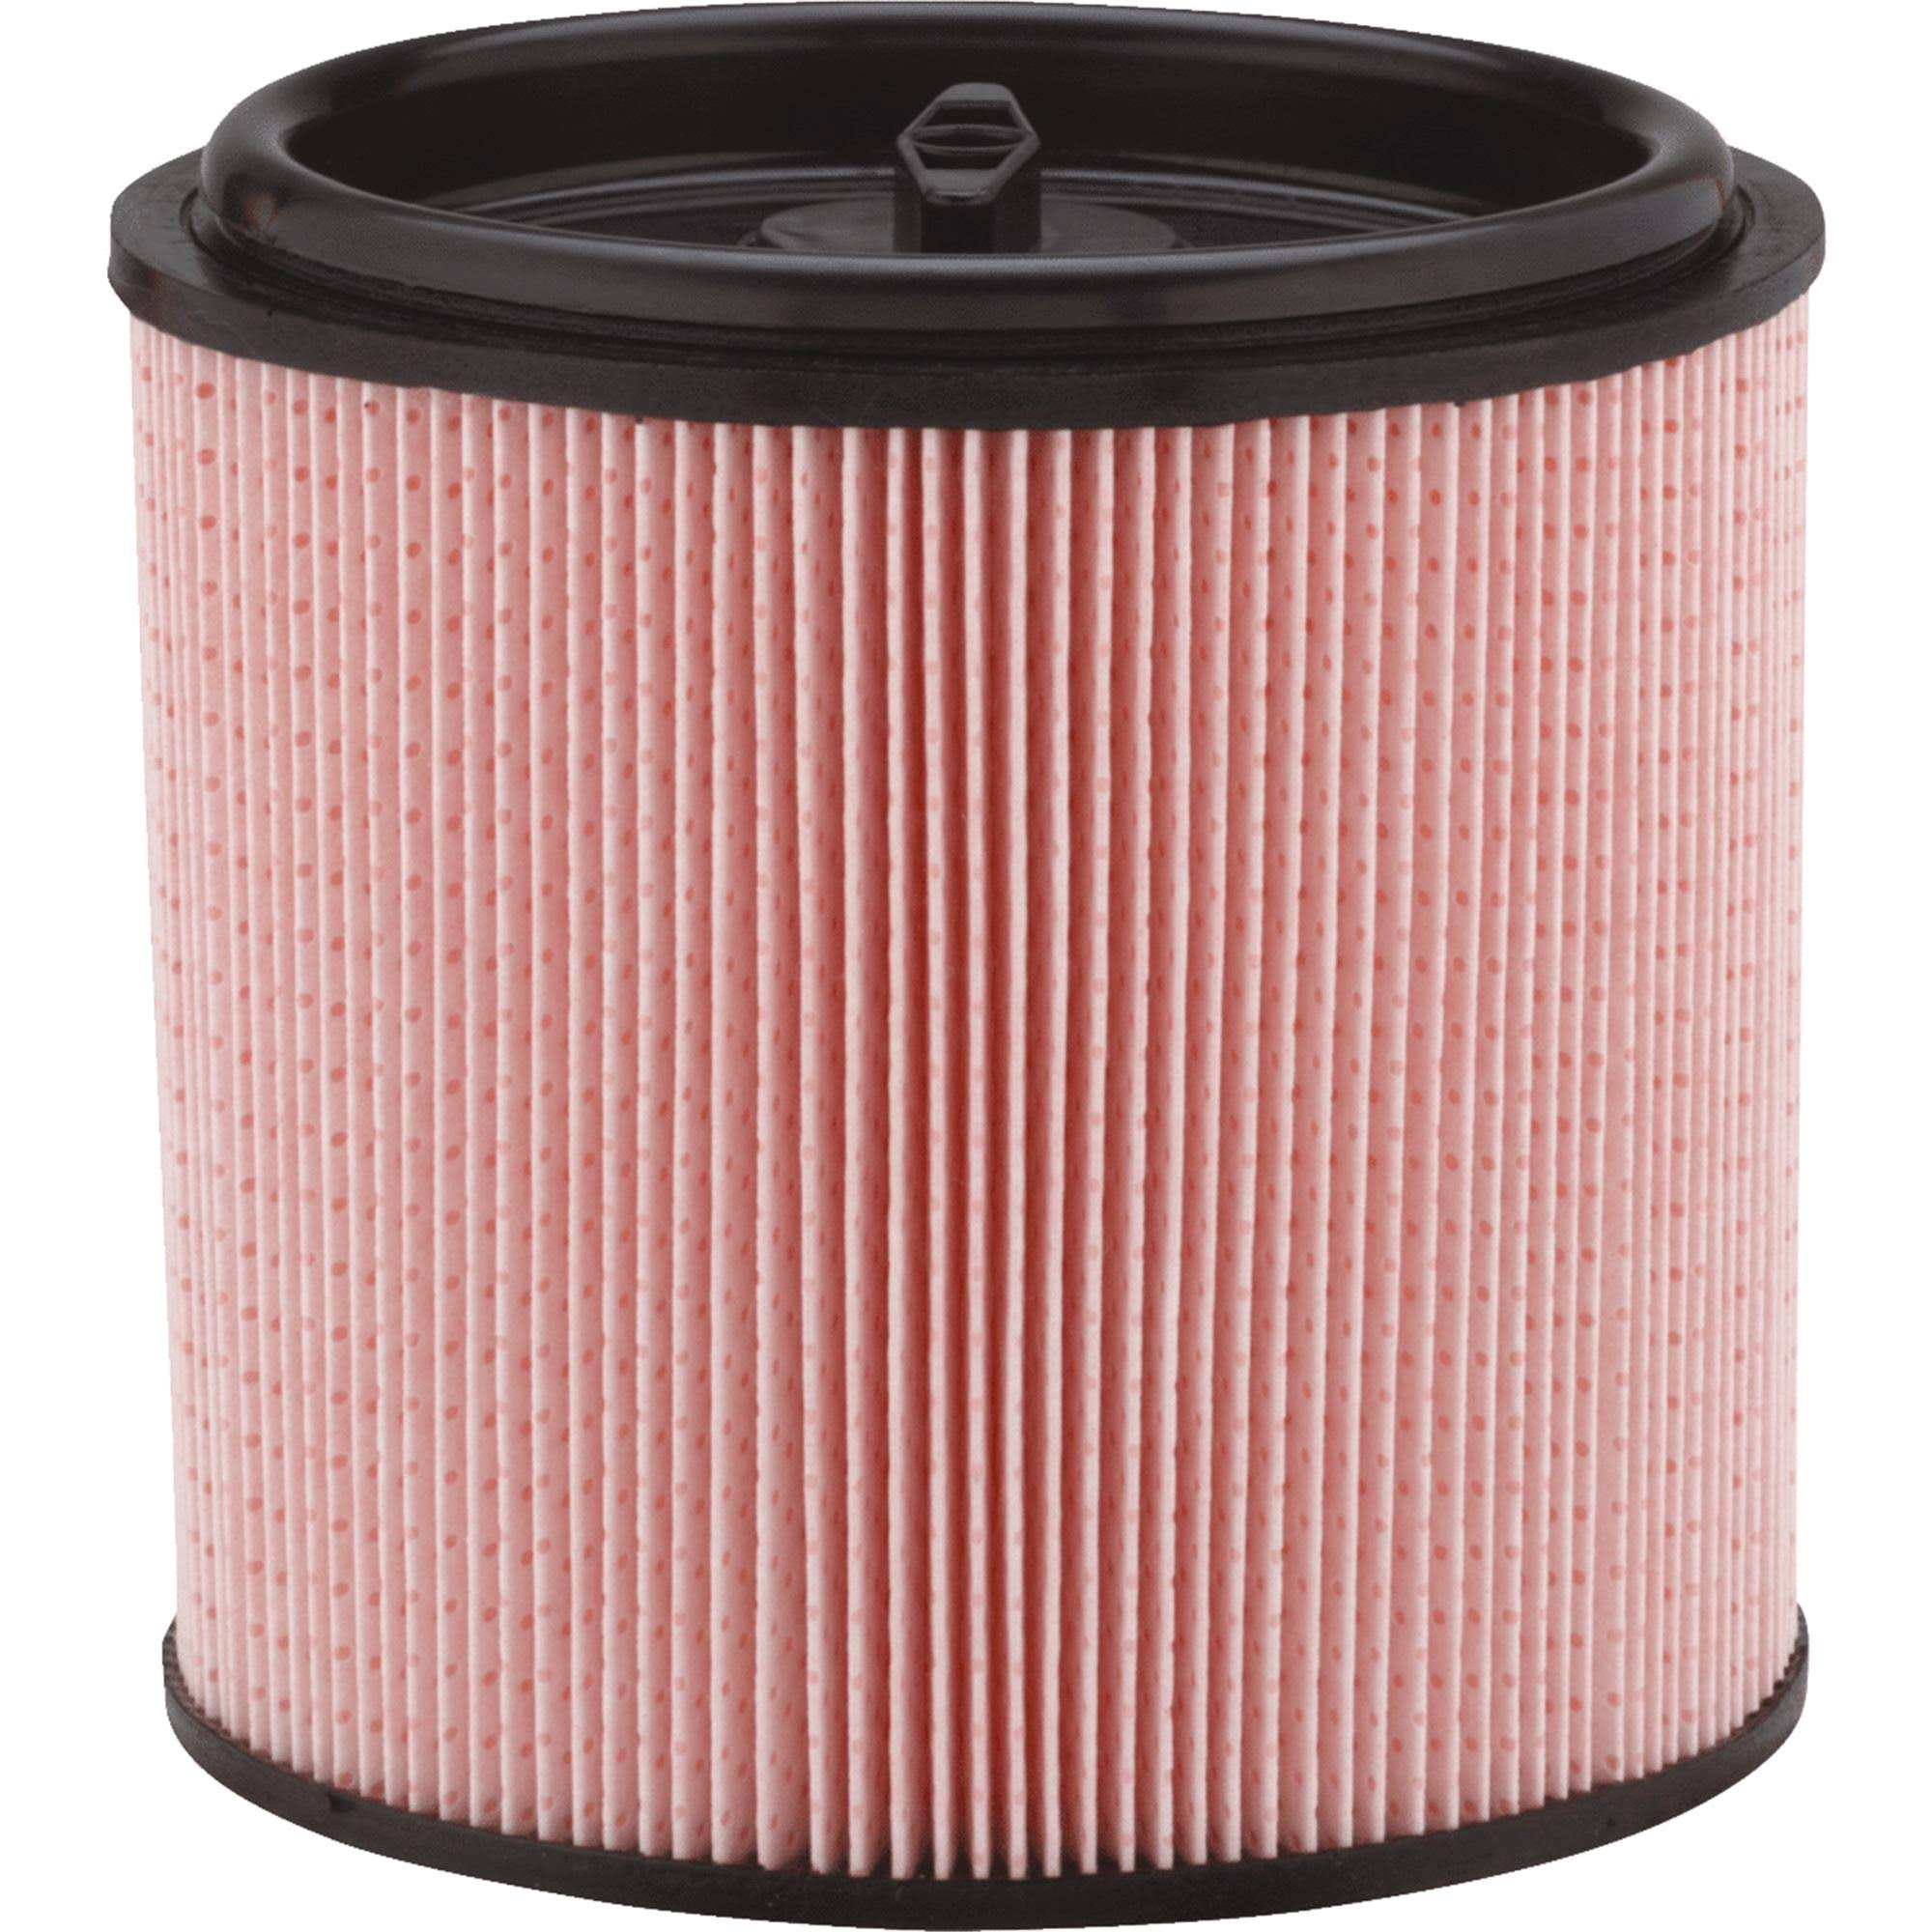 Channellock Fine Dust Cartridge Filter